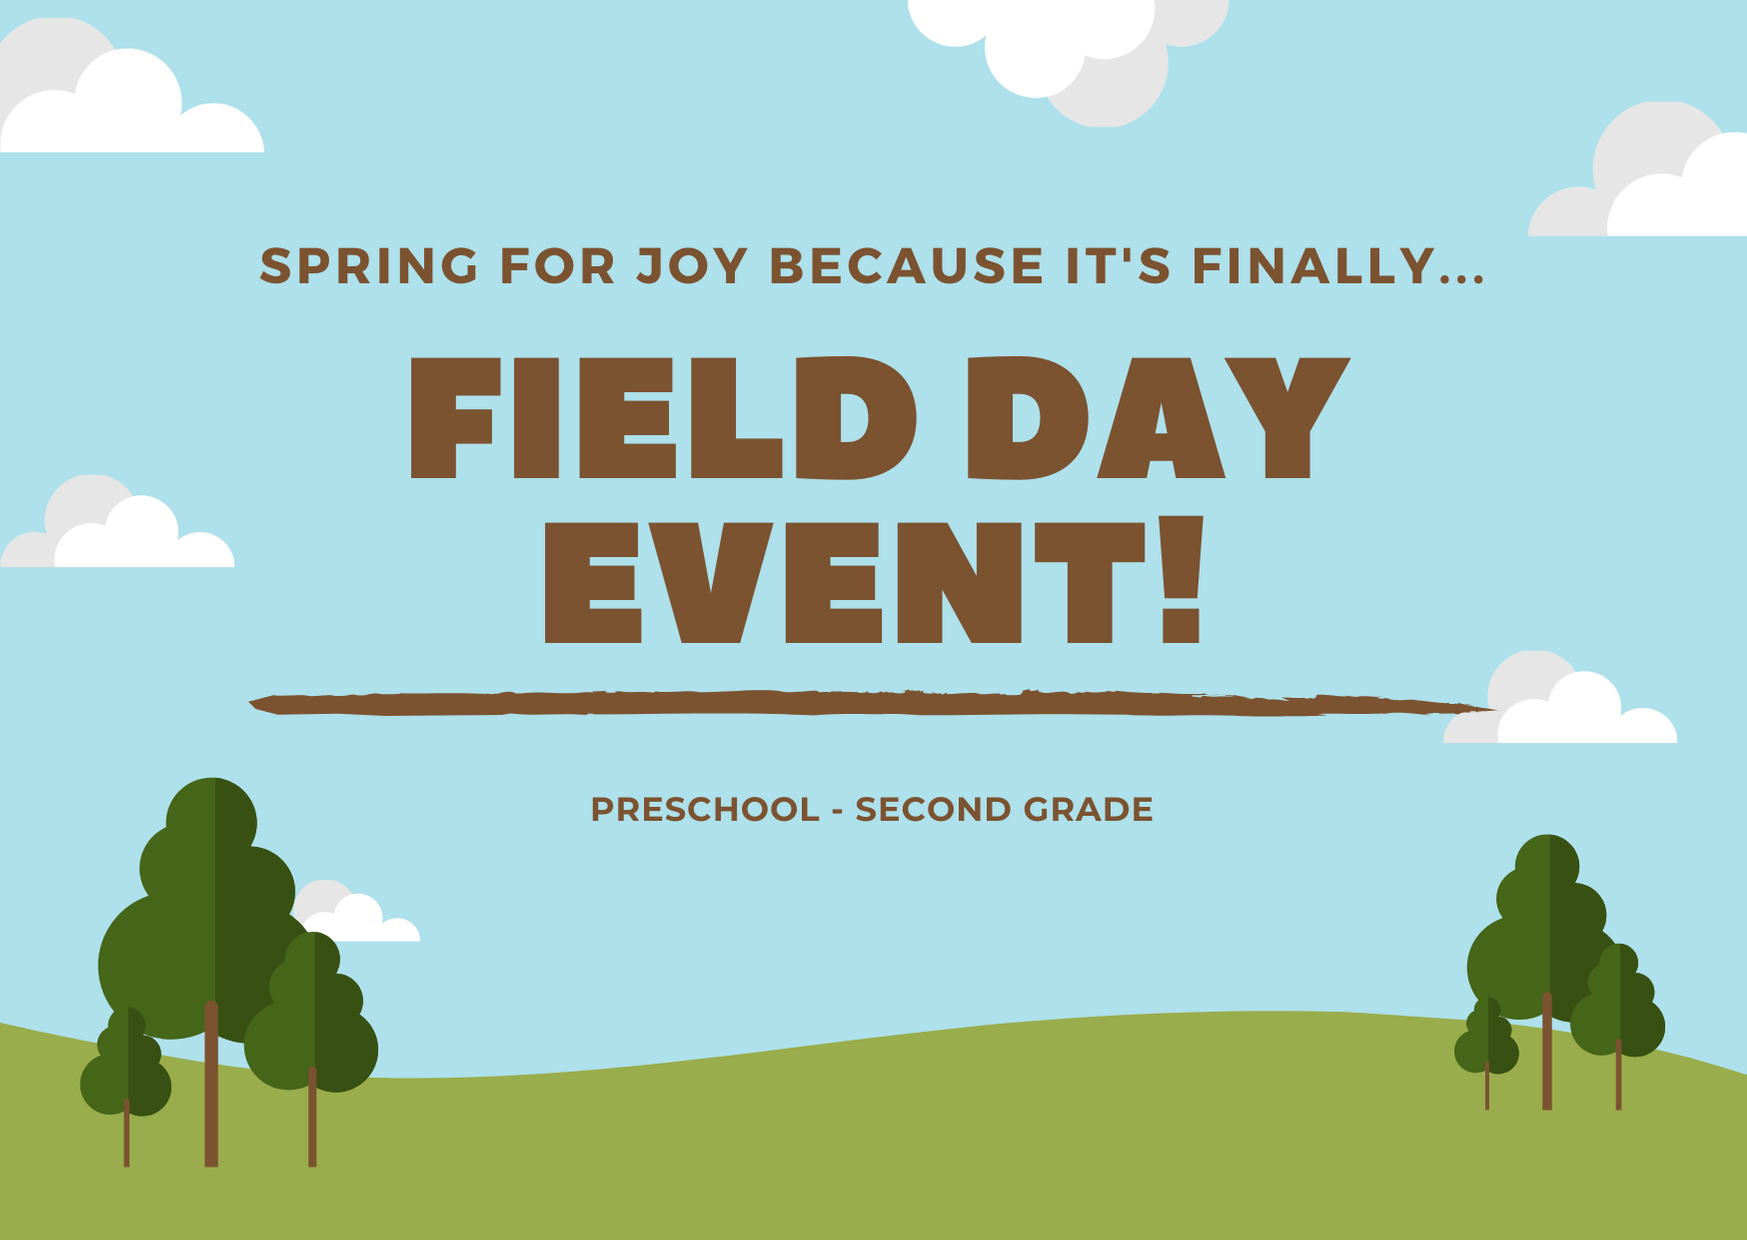 field day event